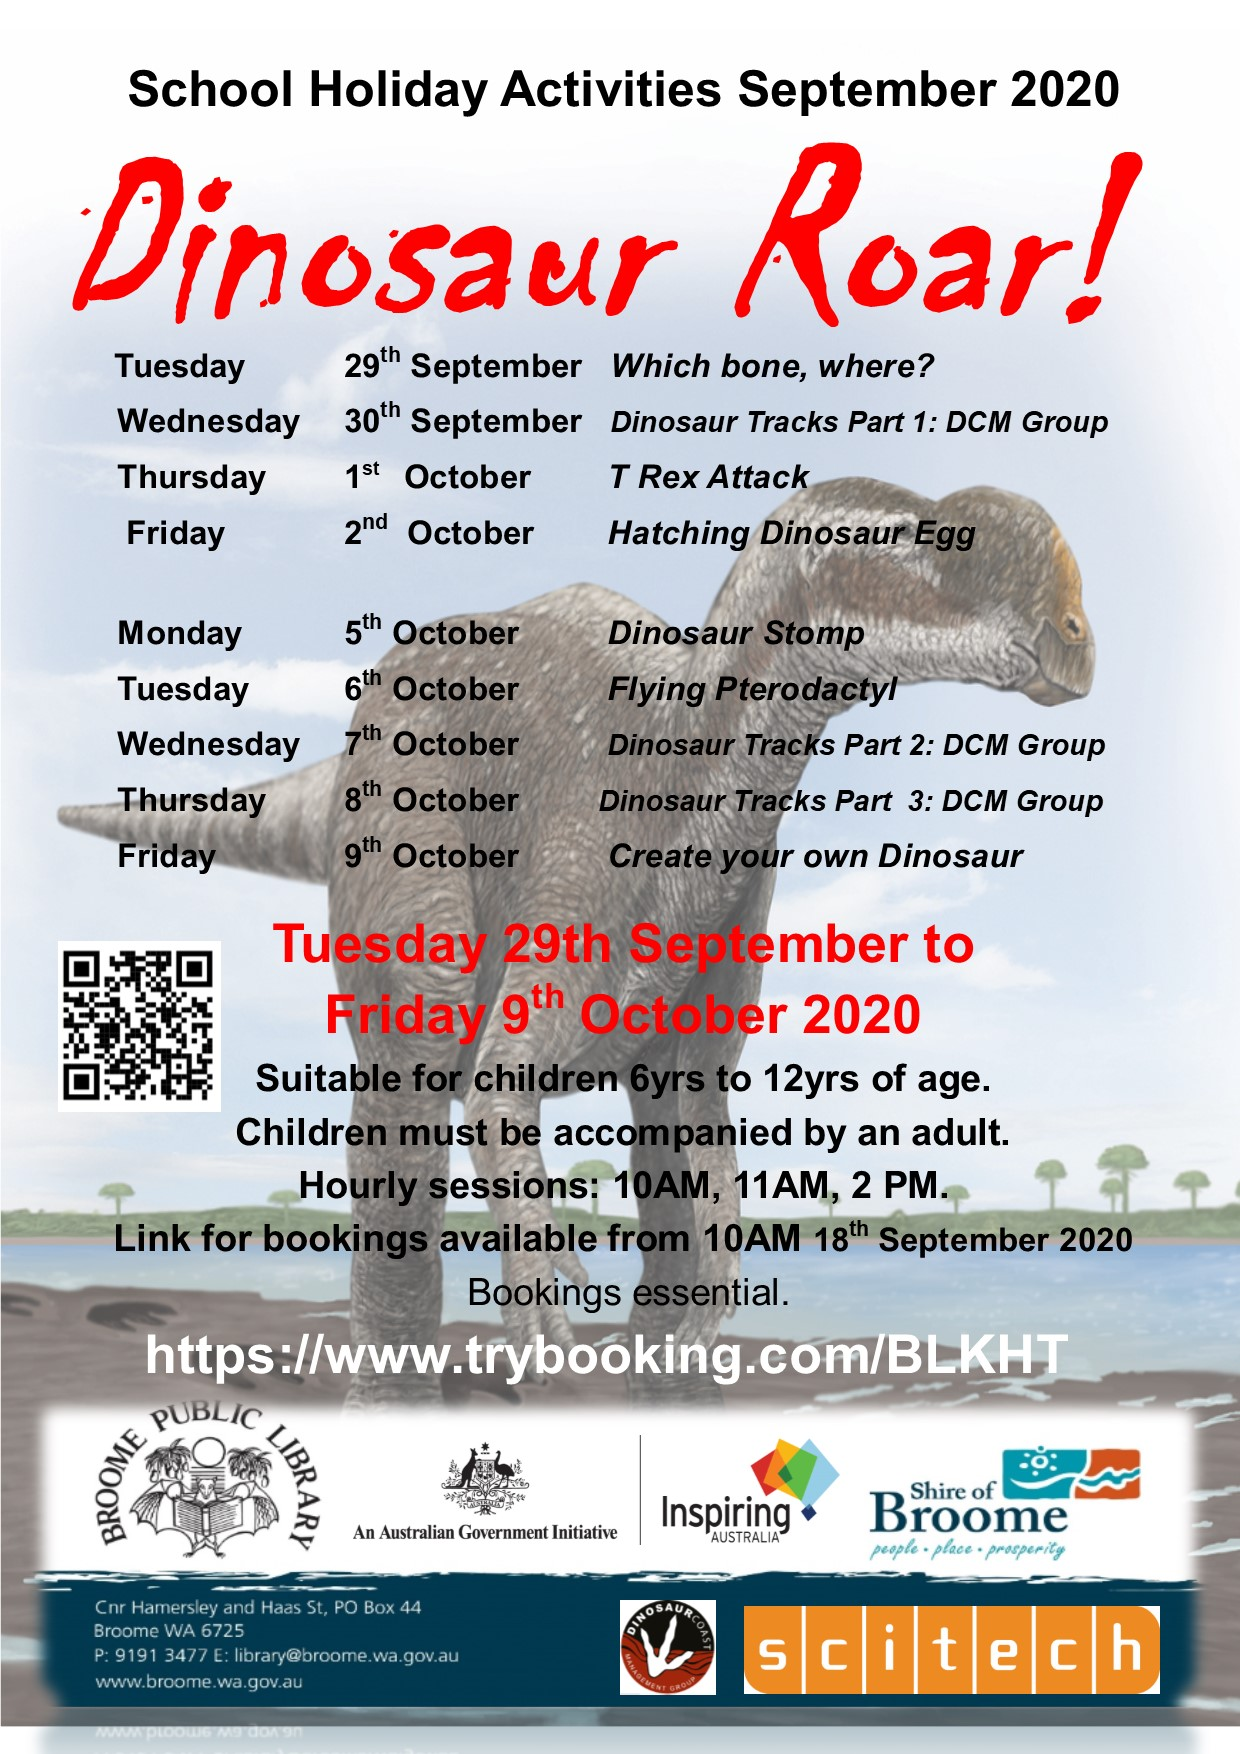 Dinosaur Roar! School Holiday Programme September 2020.jpg